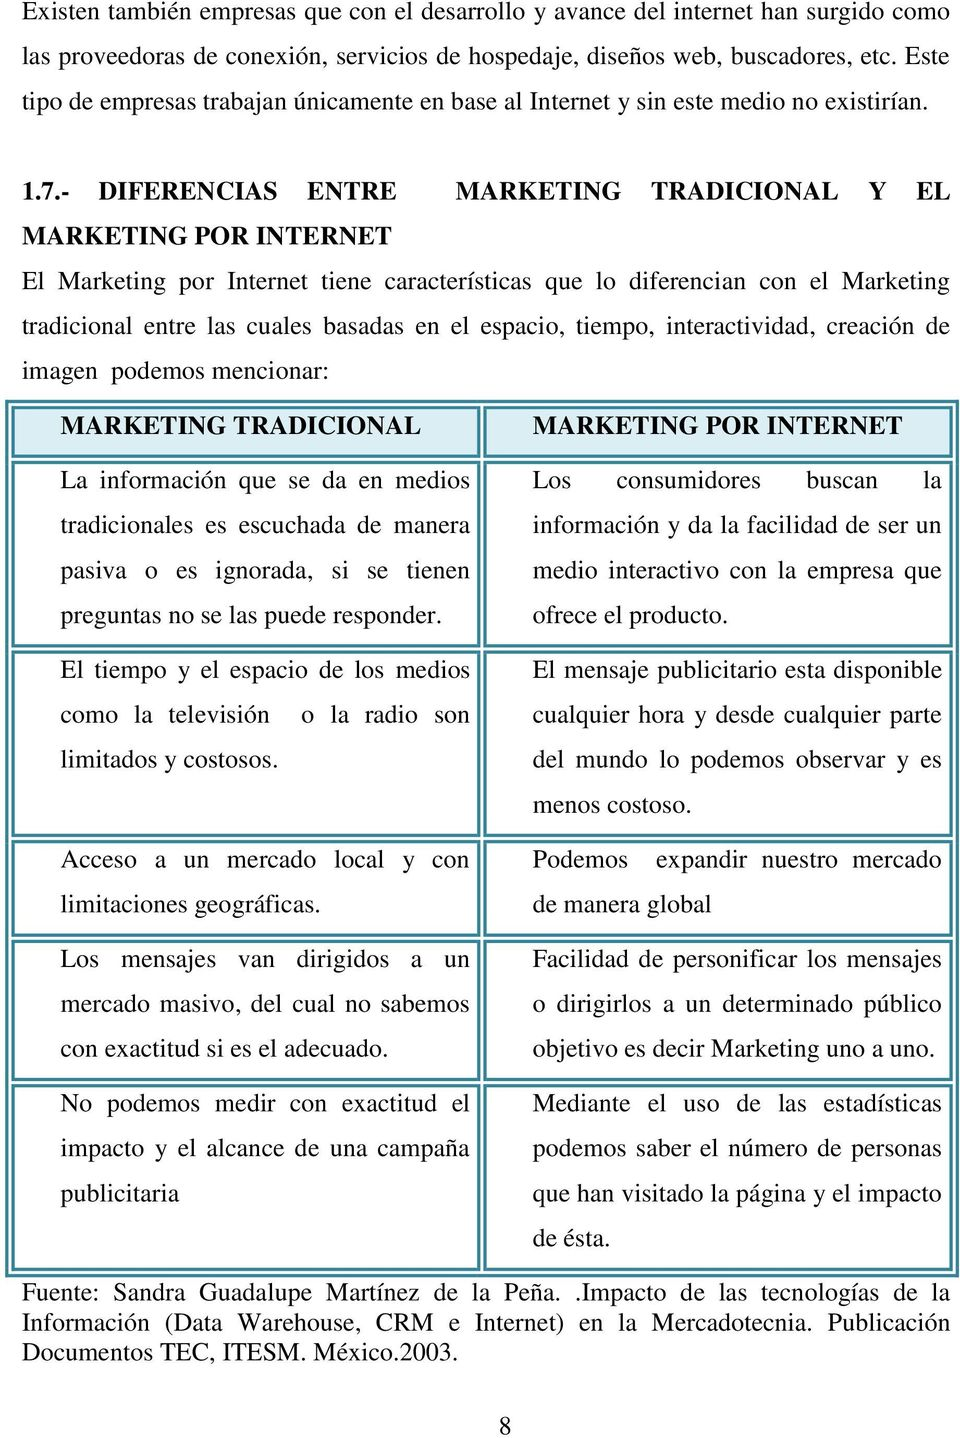 - DIFERENCIAS ENTRE MARKETING TRADICIONAL Y EL MARKETING POR INTERNET El Marketing por Internet tiene características que lo diferencian con el Marketing tradicional entre las cuales basadas en el